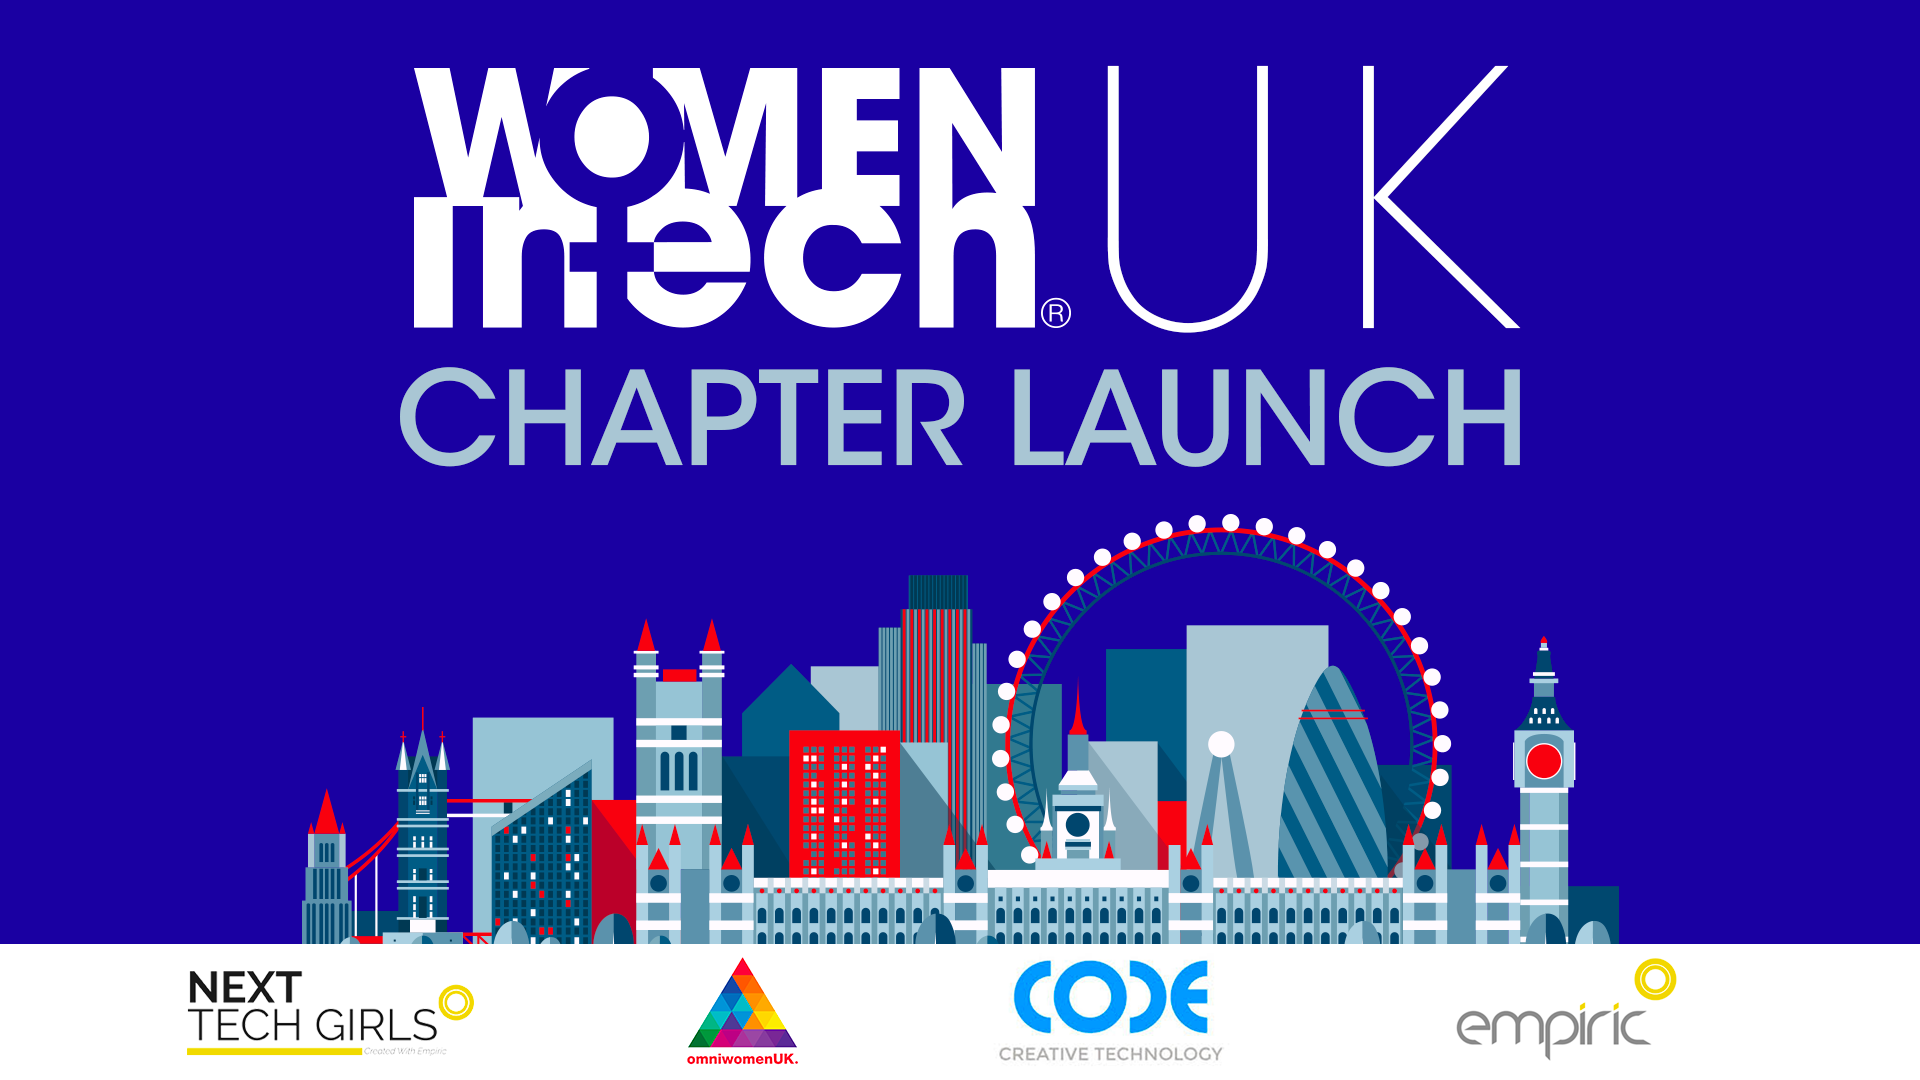 Women In Tech UK Chapter launch | London, UK